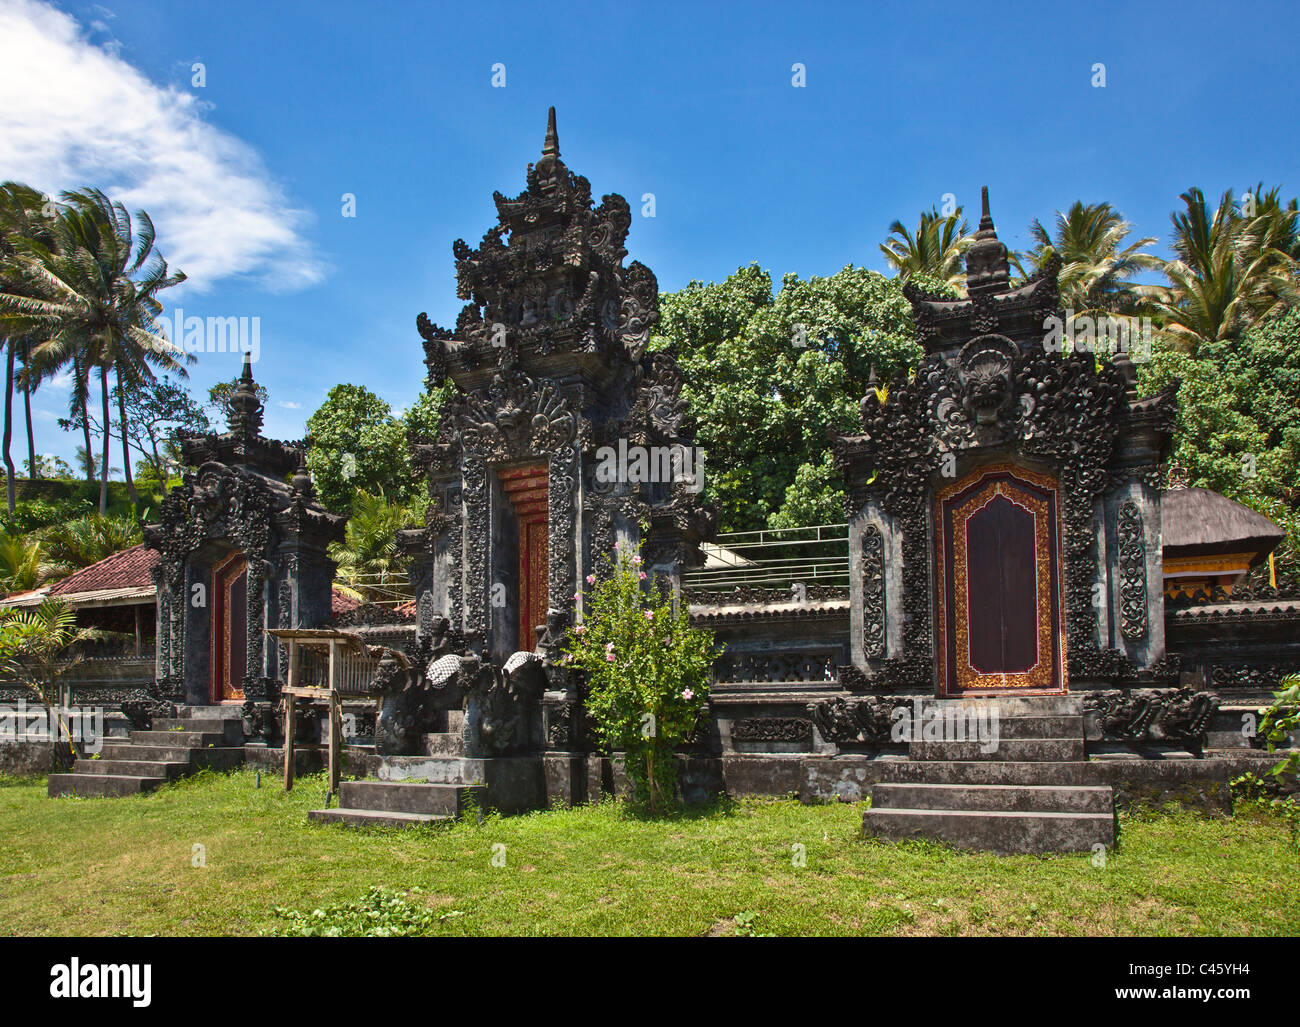 The Hindu temple of PURA PENATURAN RAMBUT SIWI is located along the West Coast - BALI, INDONESIA - Stock Image